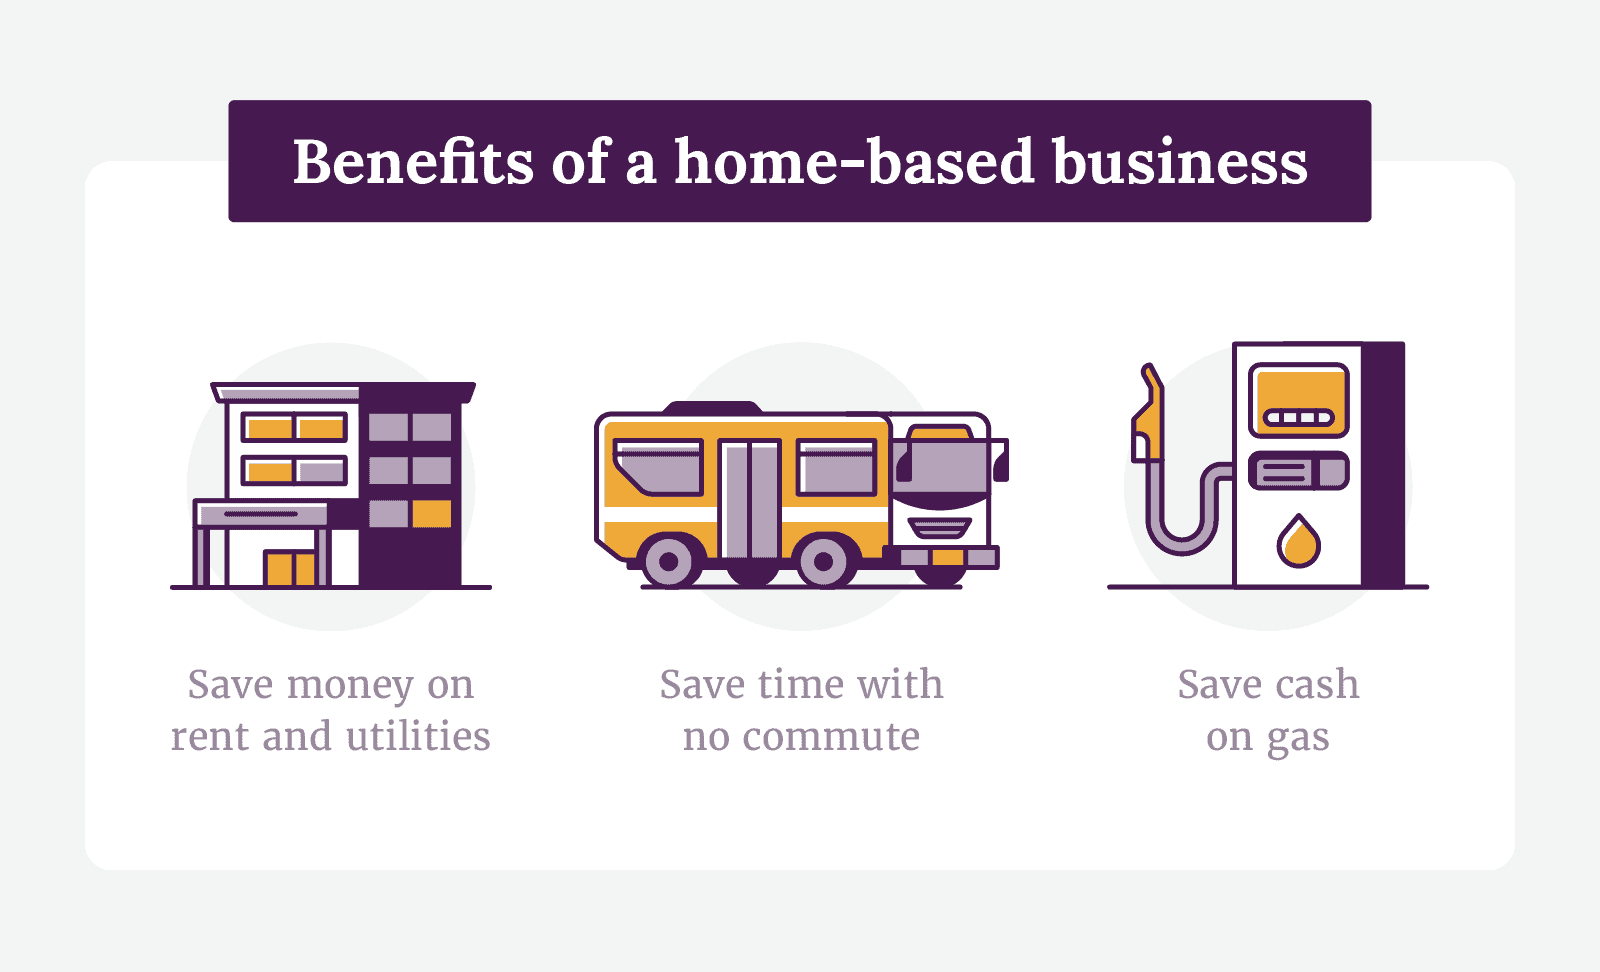 Benefits of a home-based business